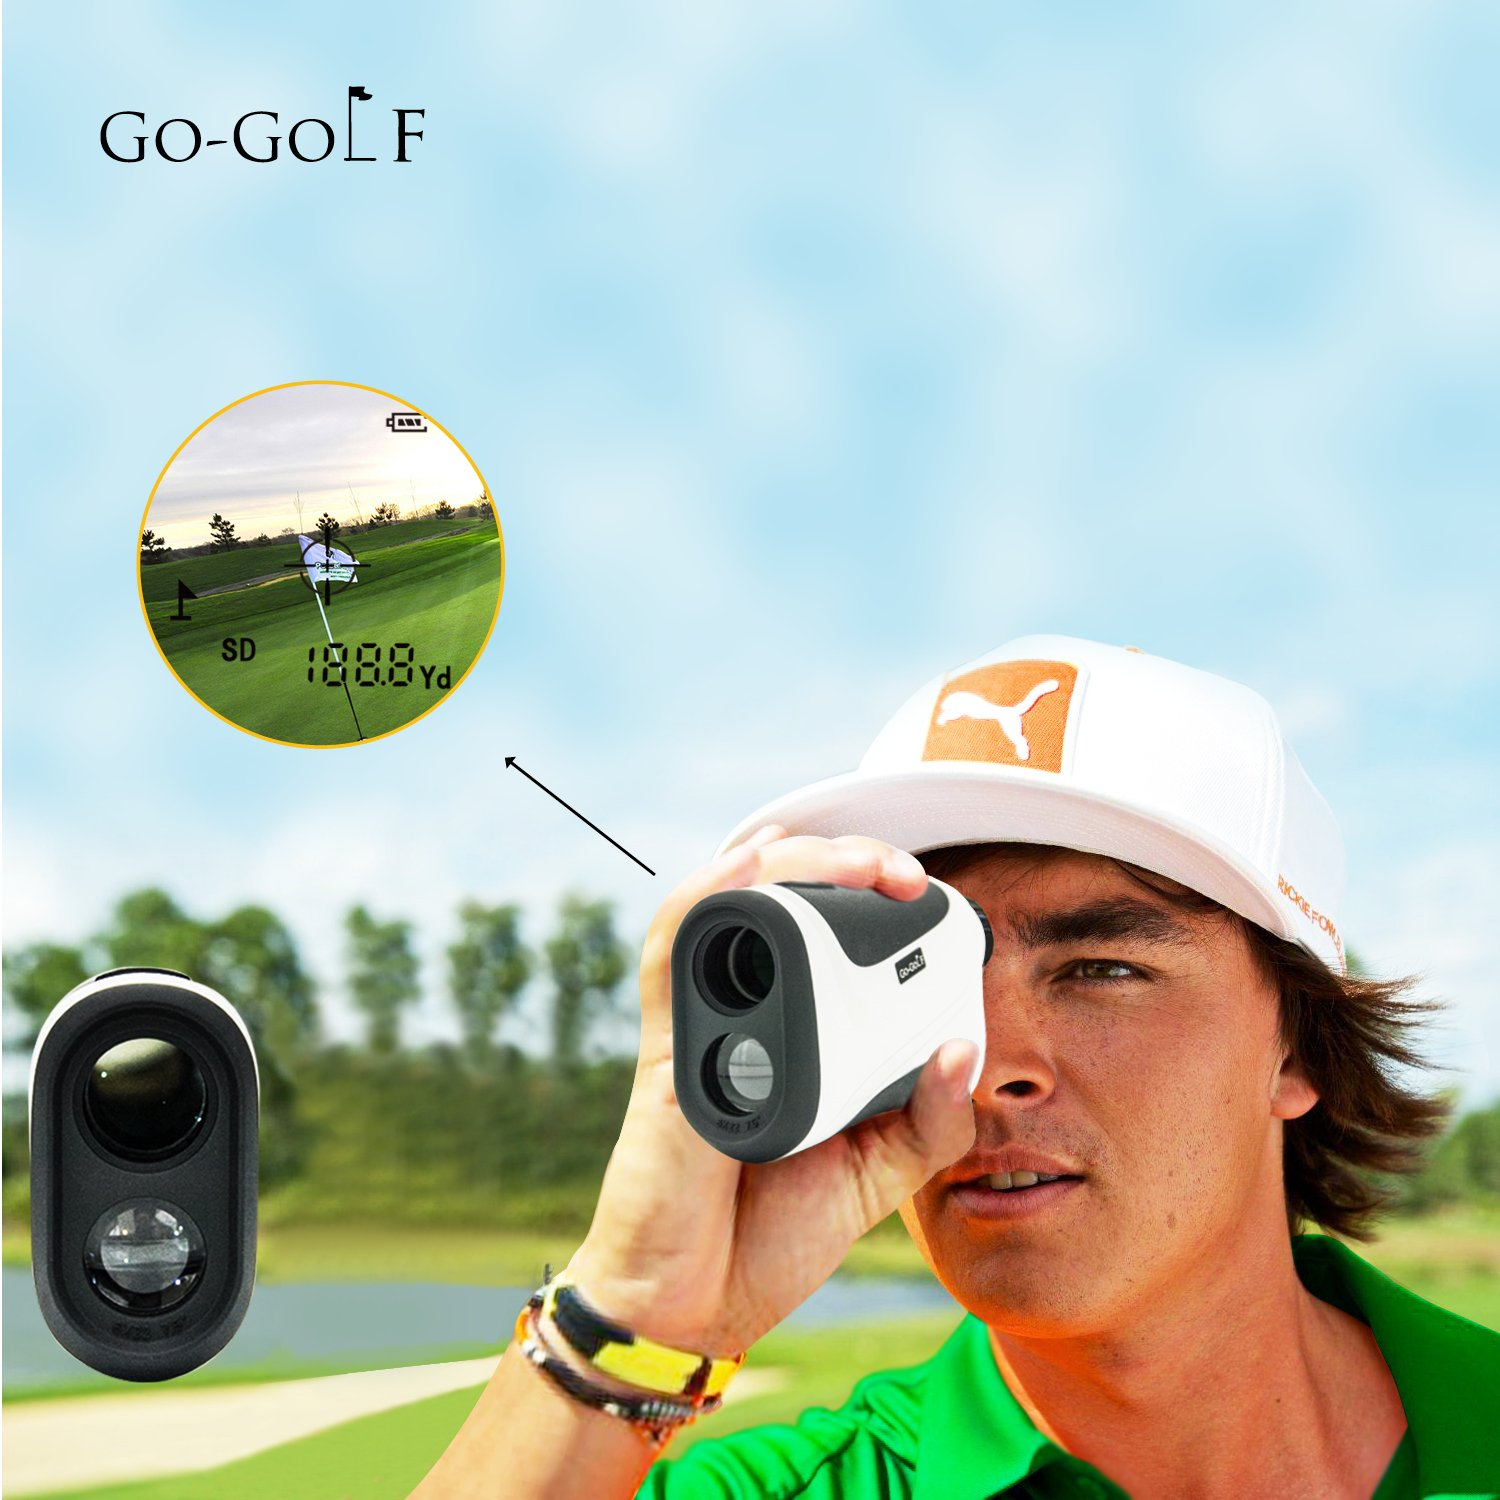 Golf Rangefinder | Laser Range Finder With Pin Sensor & Pulse Tech | Easy To Use, Compact, Accurate & Clear Reading | Golf Binoculars Yardage Rangefinder by Go-Golf (Image #5)